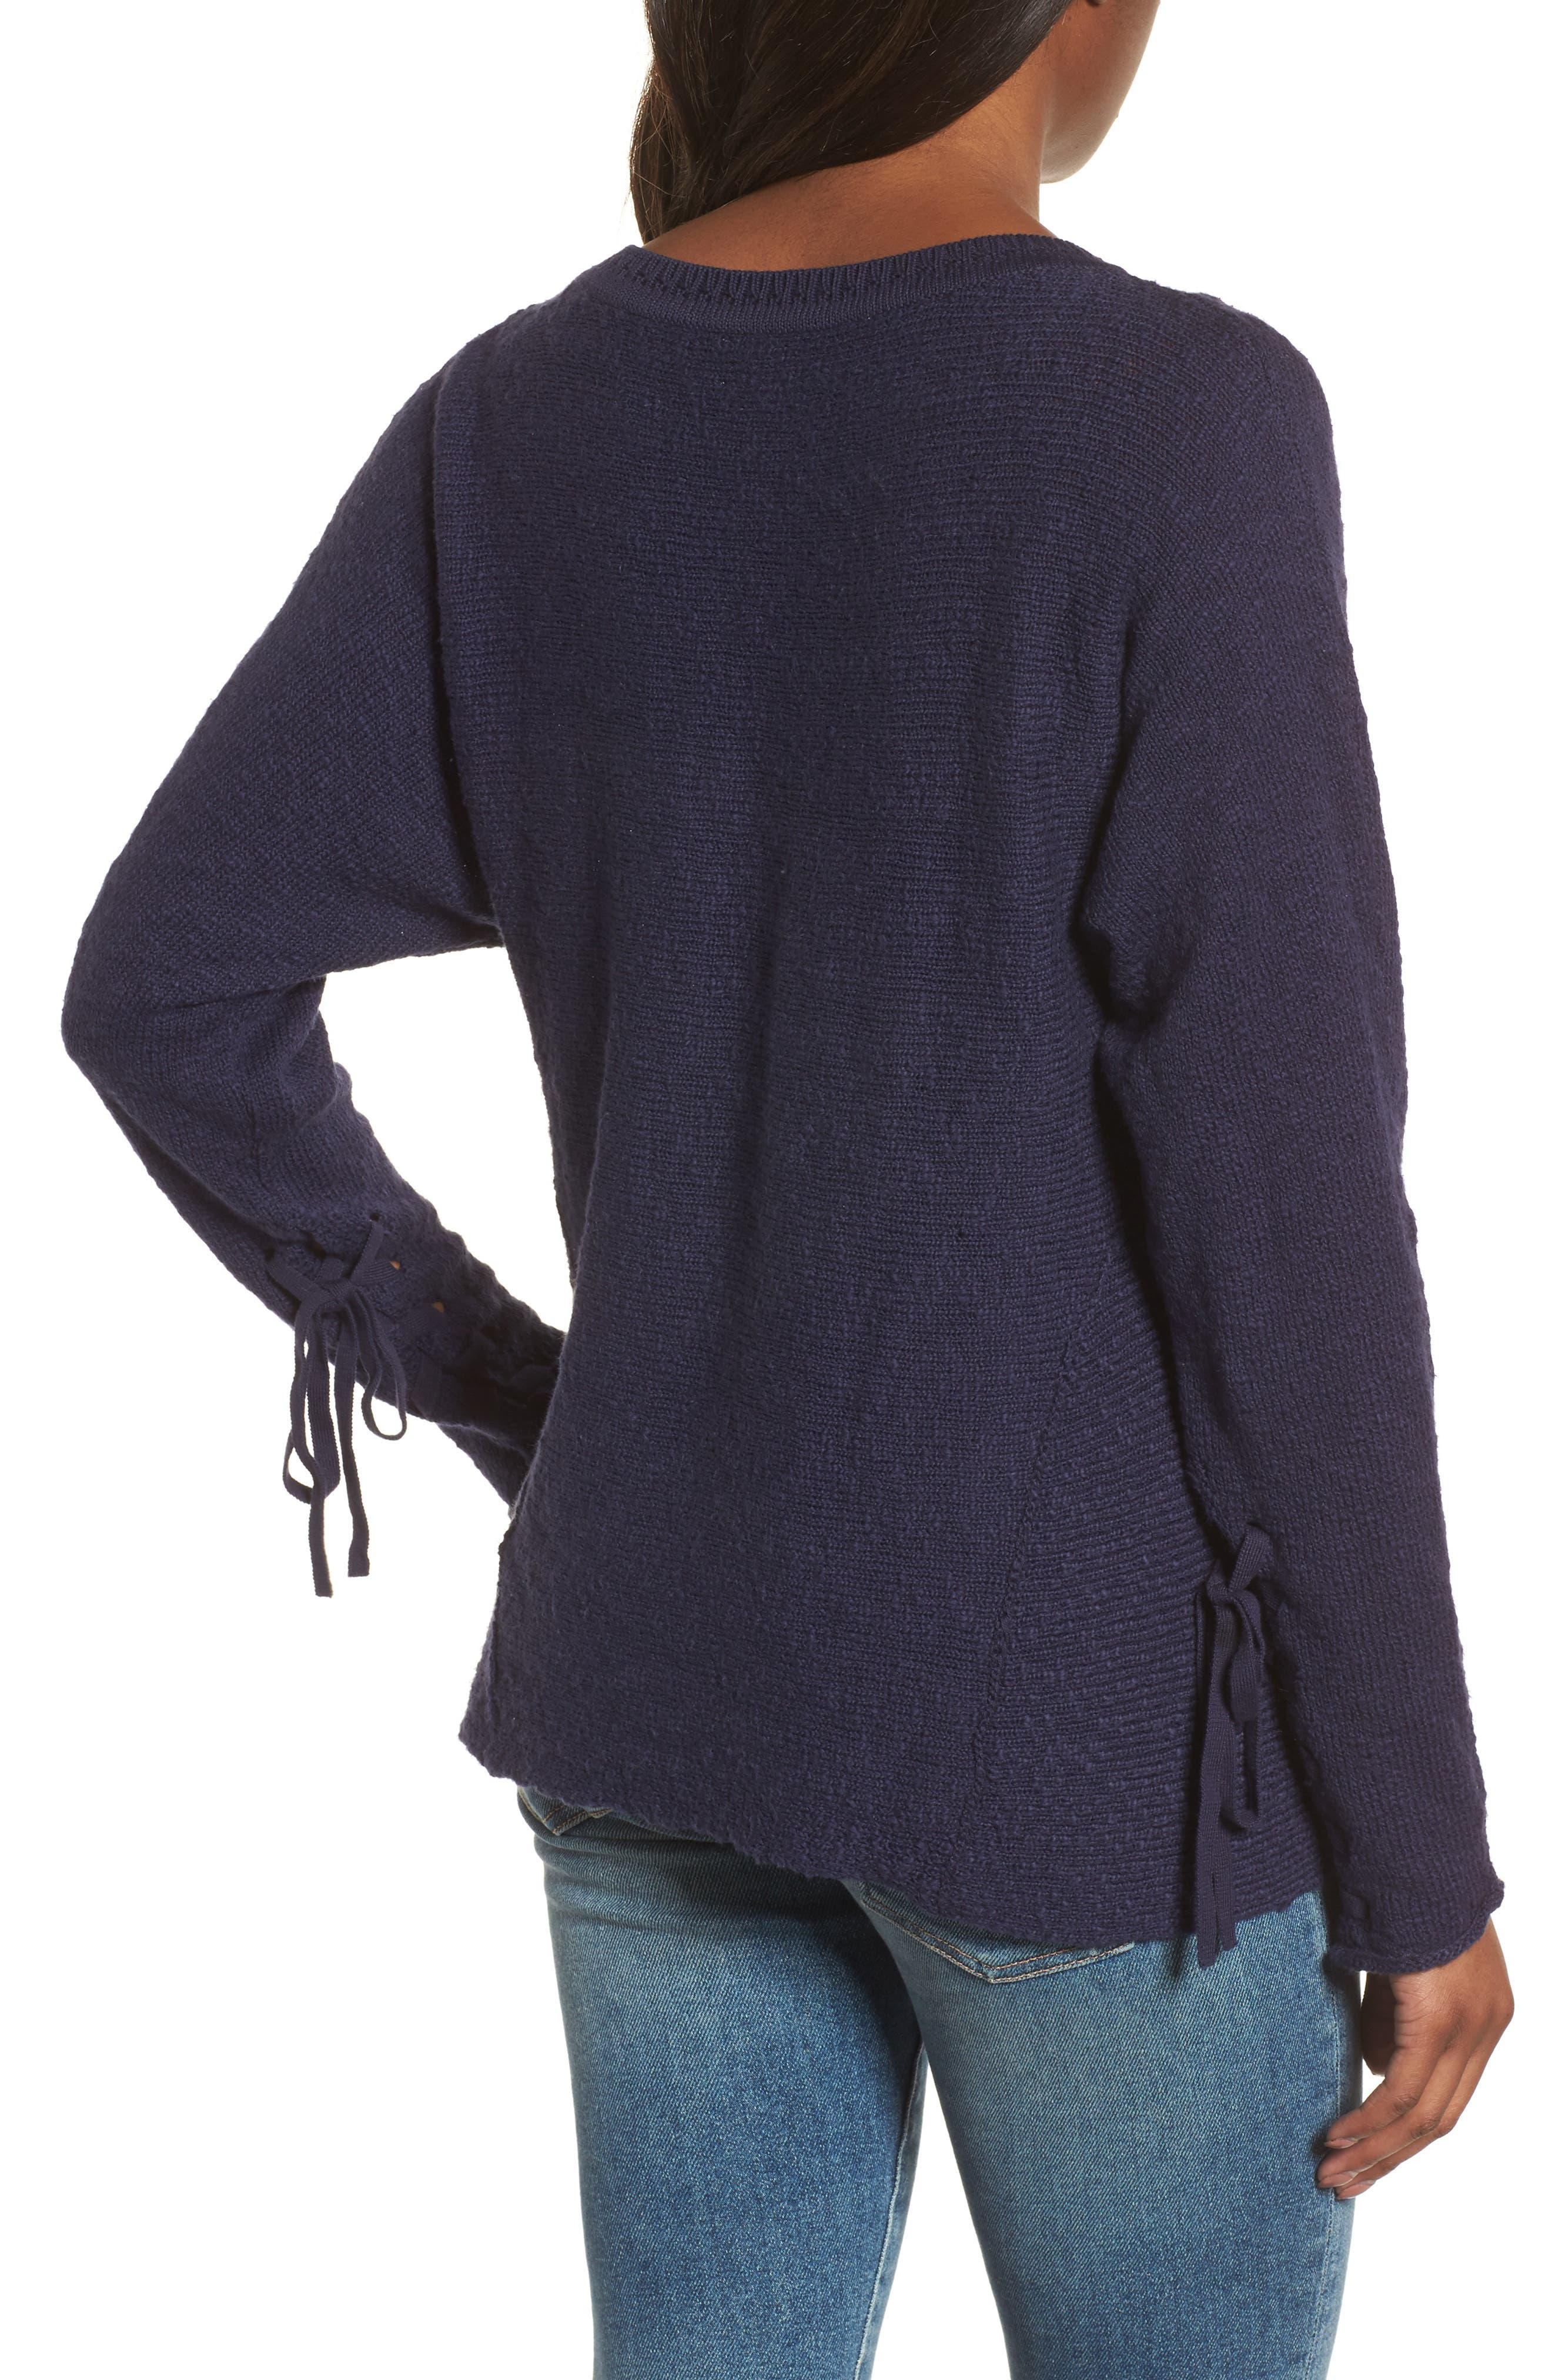 CASLON<SUP>®</SUP>, Mix Stitch Swing Cotton Sweater, Alternate thumbnail 2, color, NAVY PEACOAT